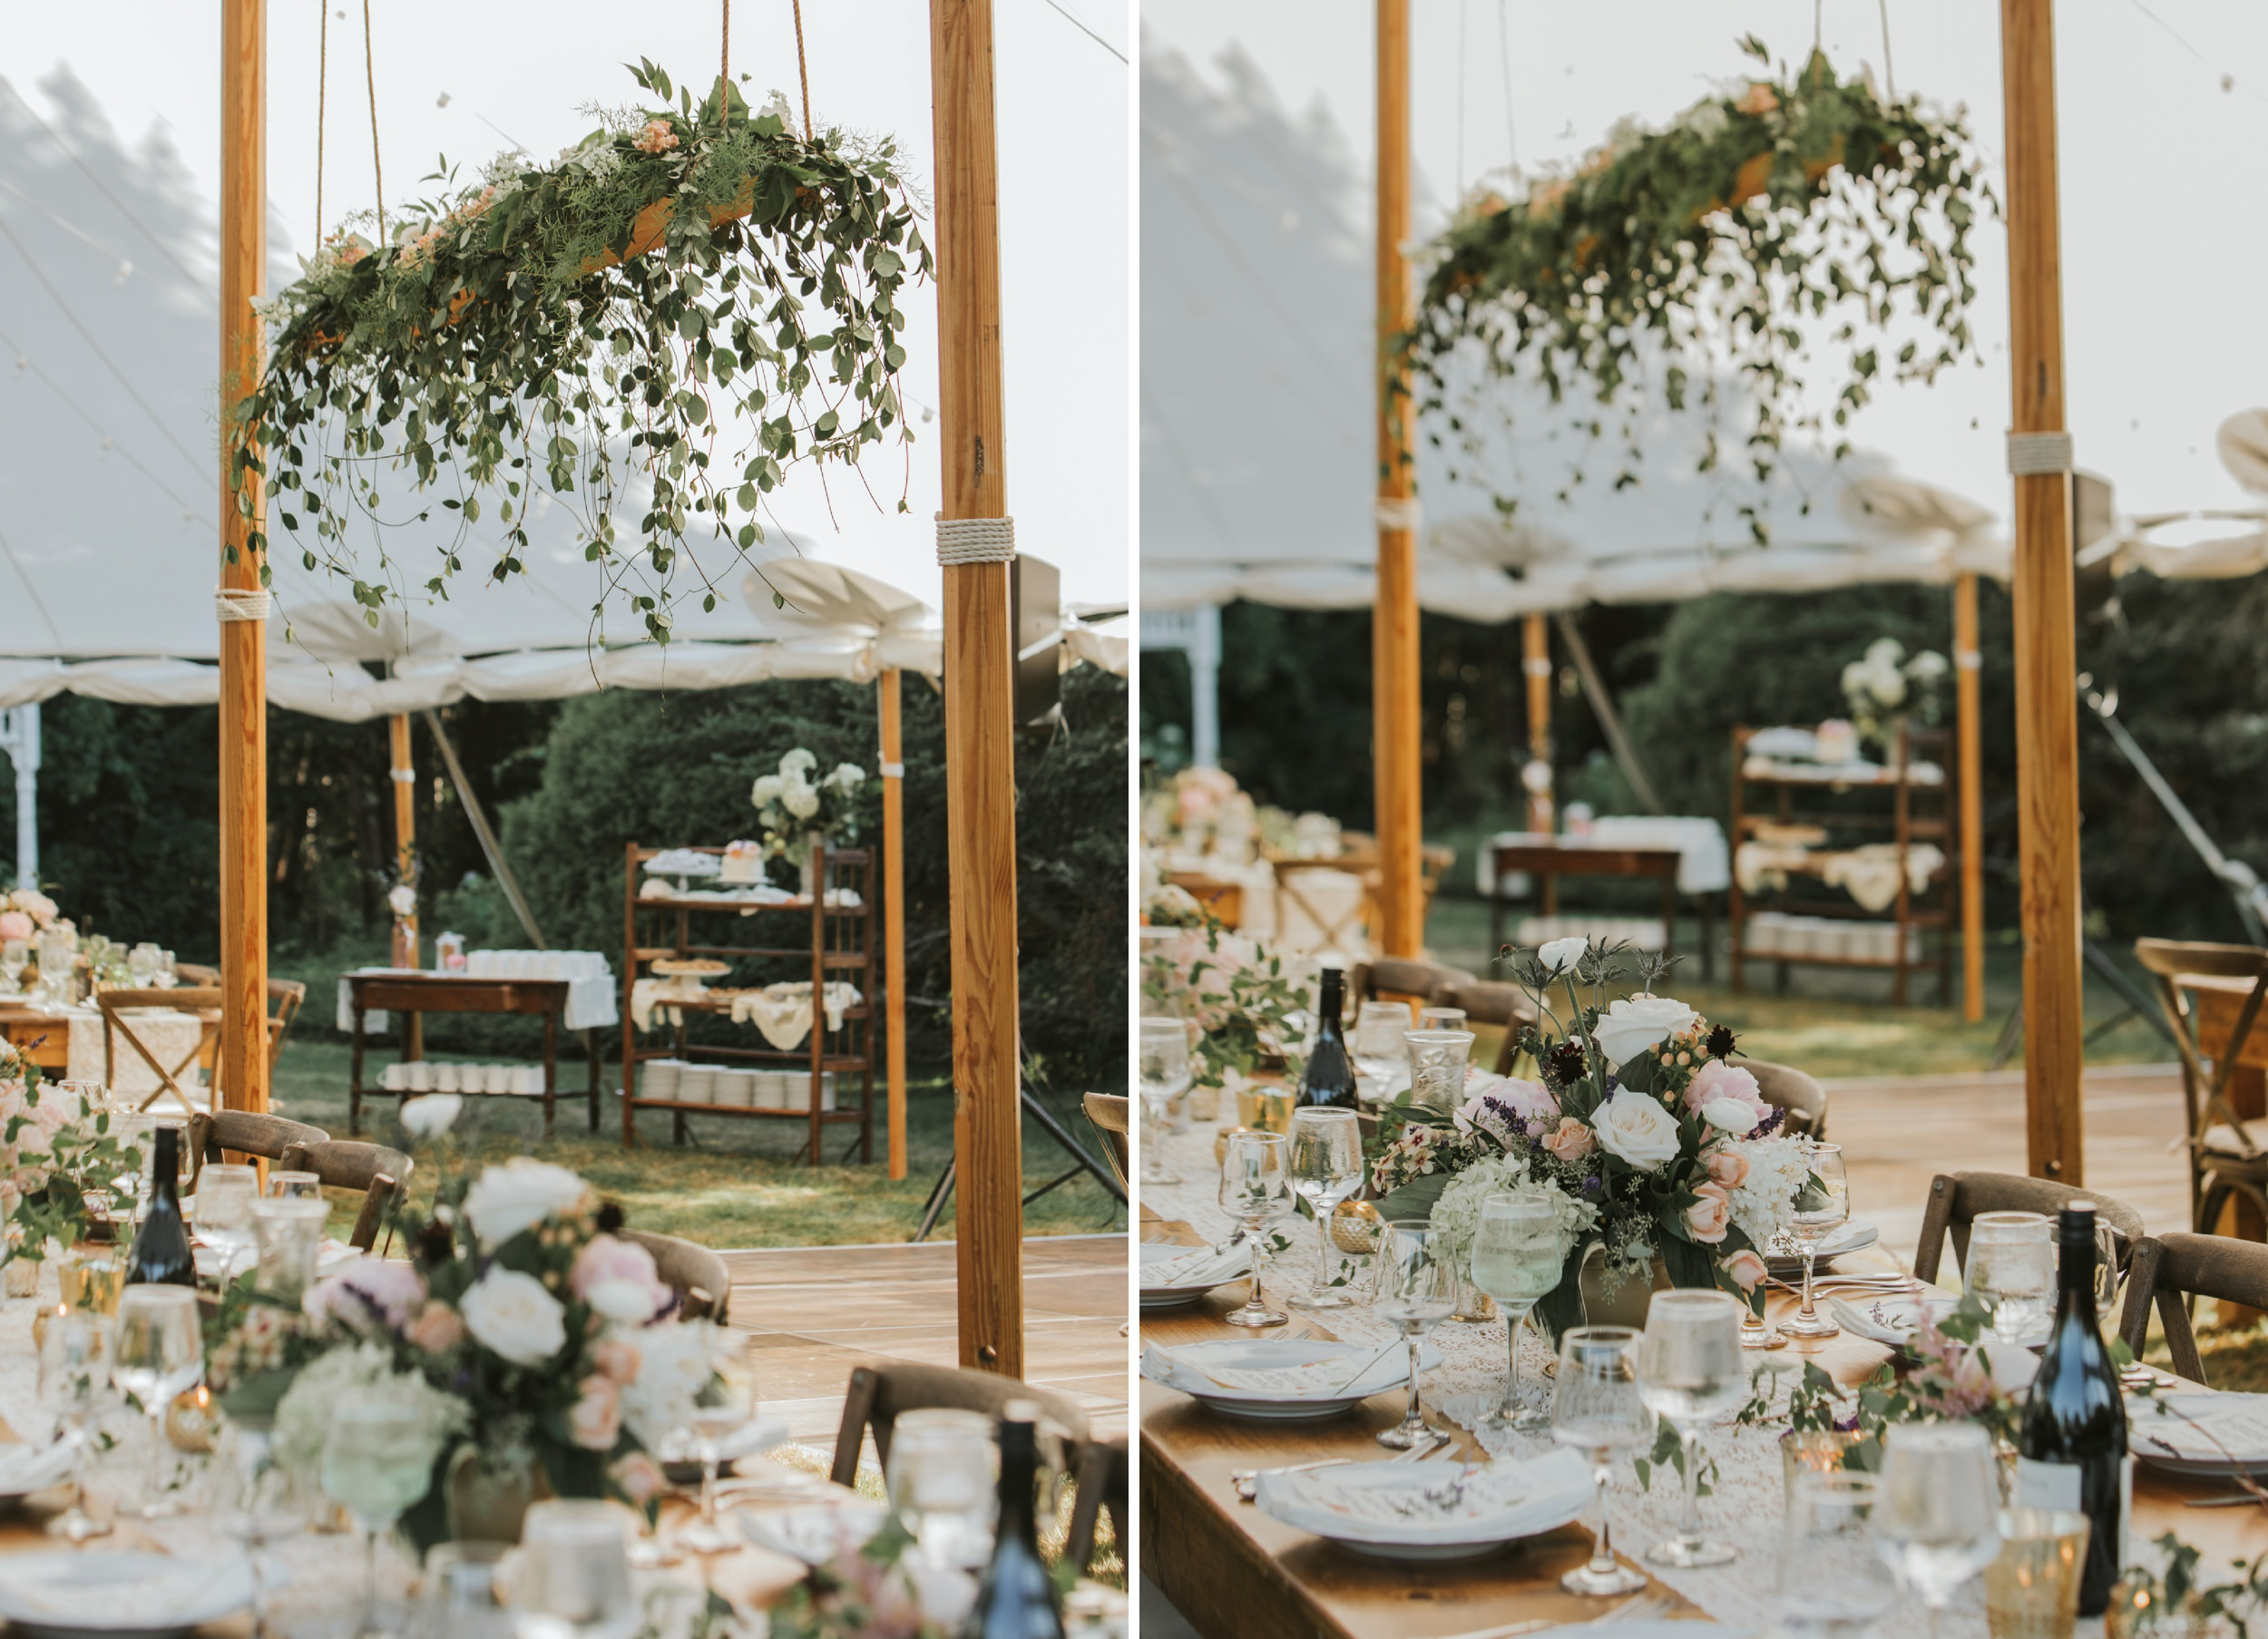 Table and floral details at wedding reception